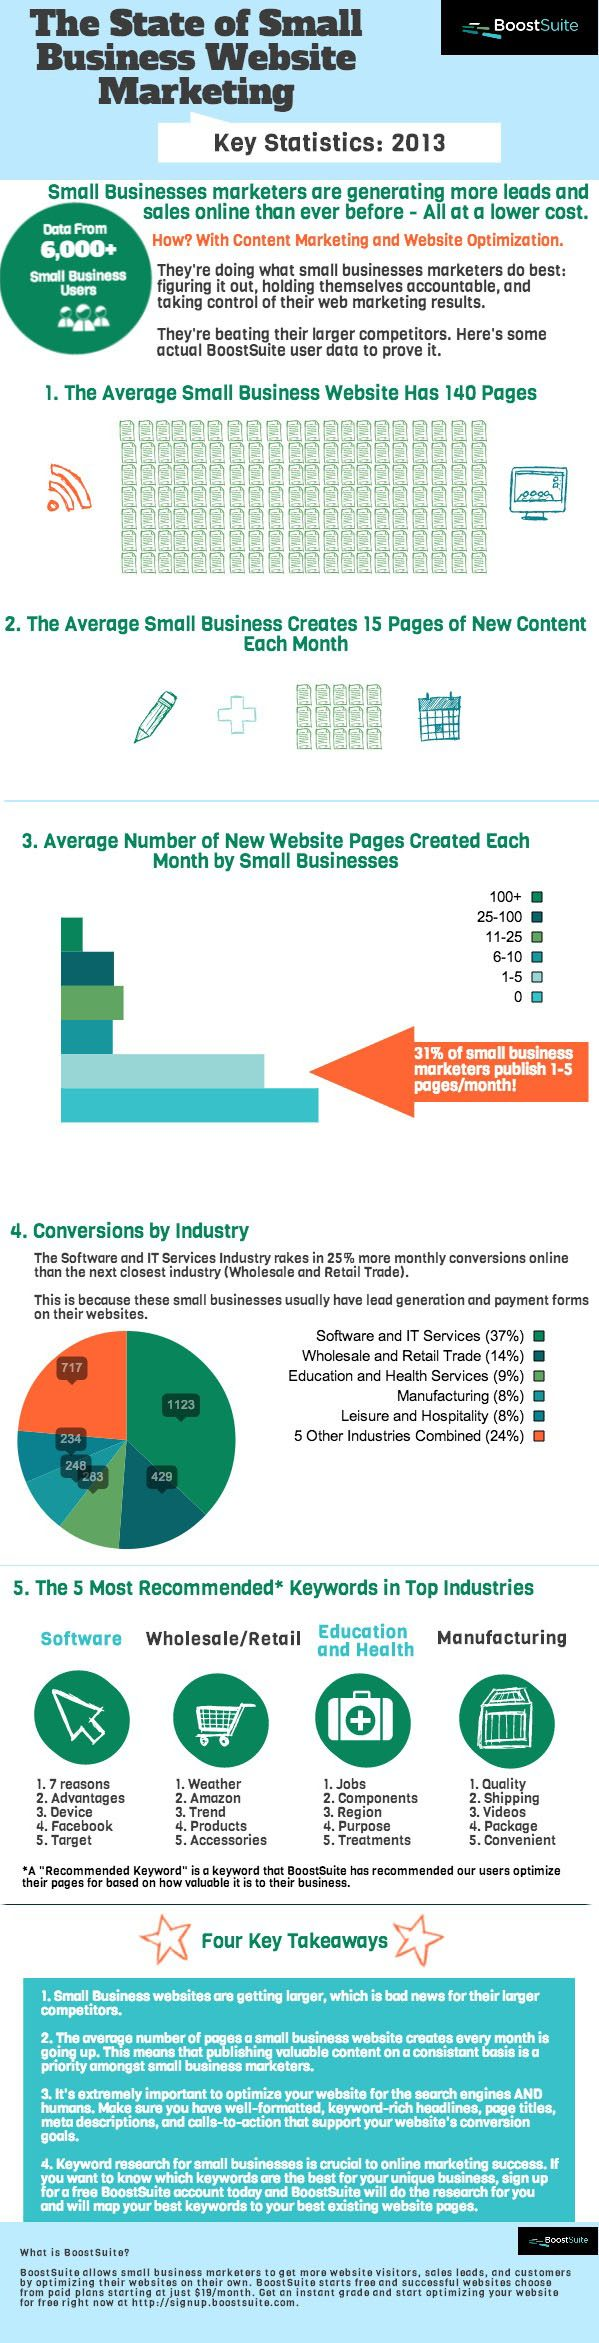 The State of Small Business Website Marketing – Infographic 1